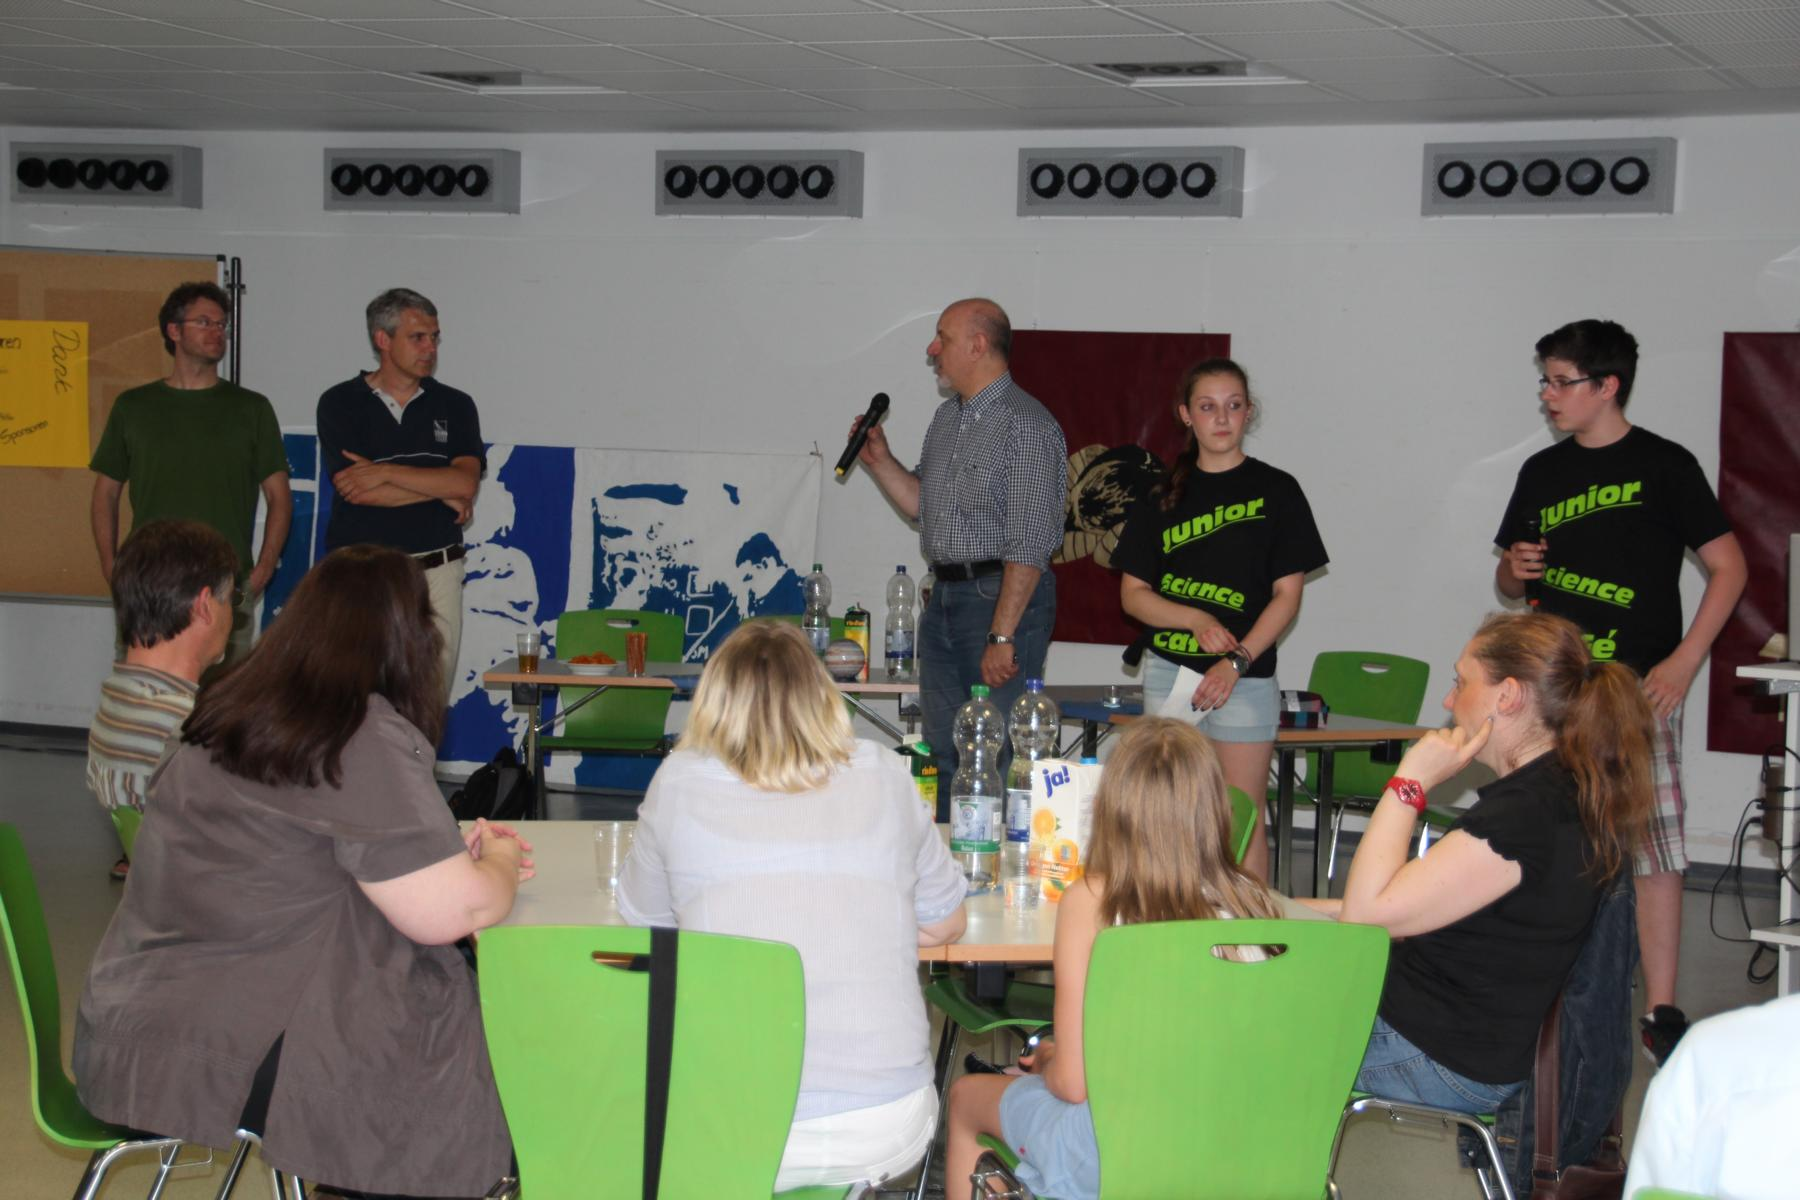 Junior Science Café (1)